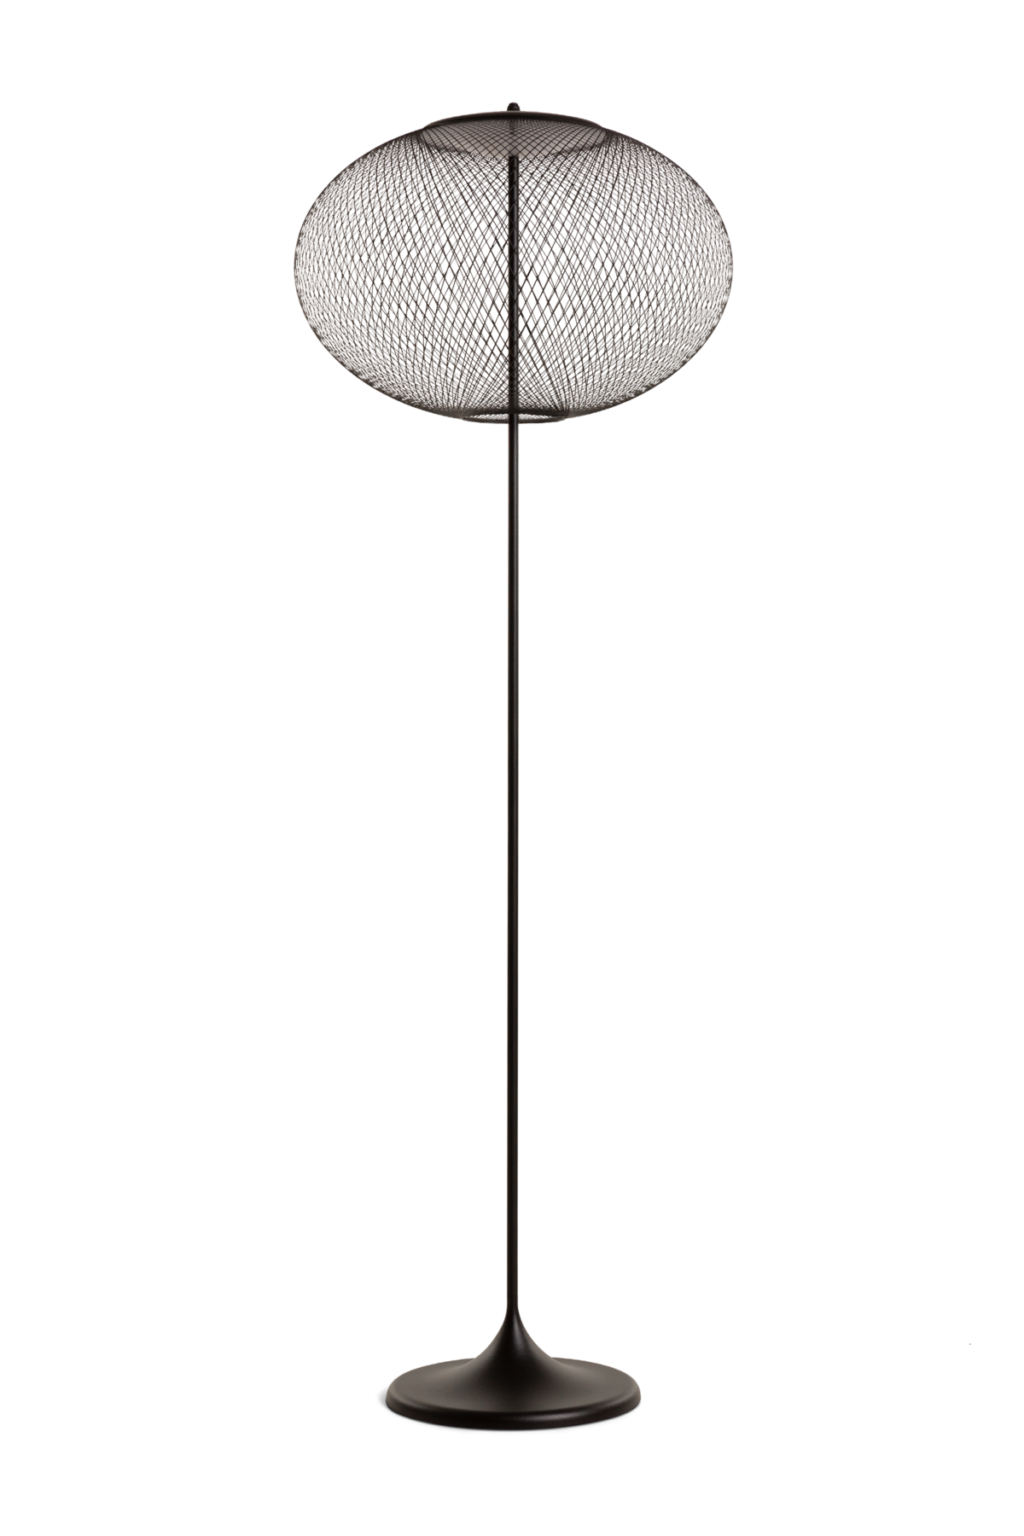 https://desidea.hu/wp-content/uploads/fly-images/160185/moooi-nr2-allolampa2-1024x0.png